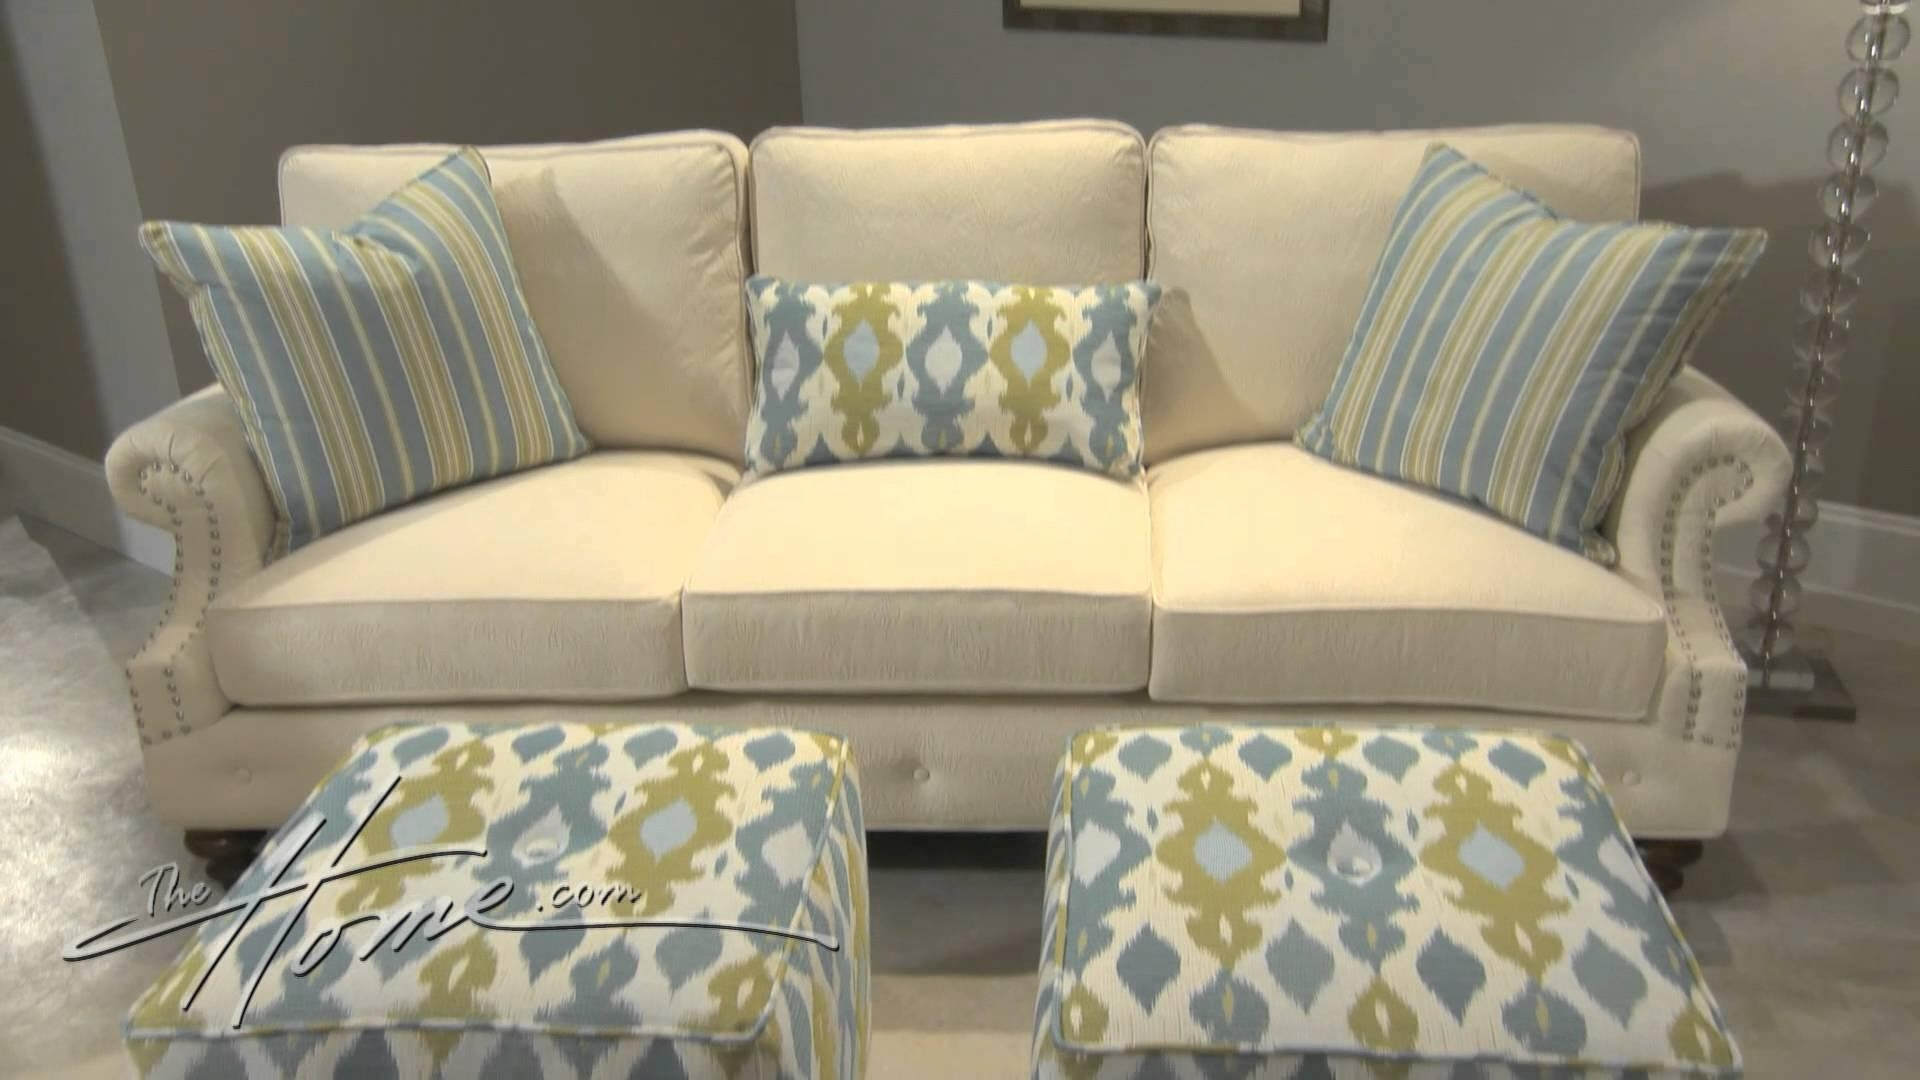 Hooker Furniture Introduces Sam Moore Sofas – Youtube Inside Sam Moore Sofas (View 14 of 20)